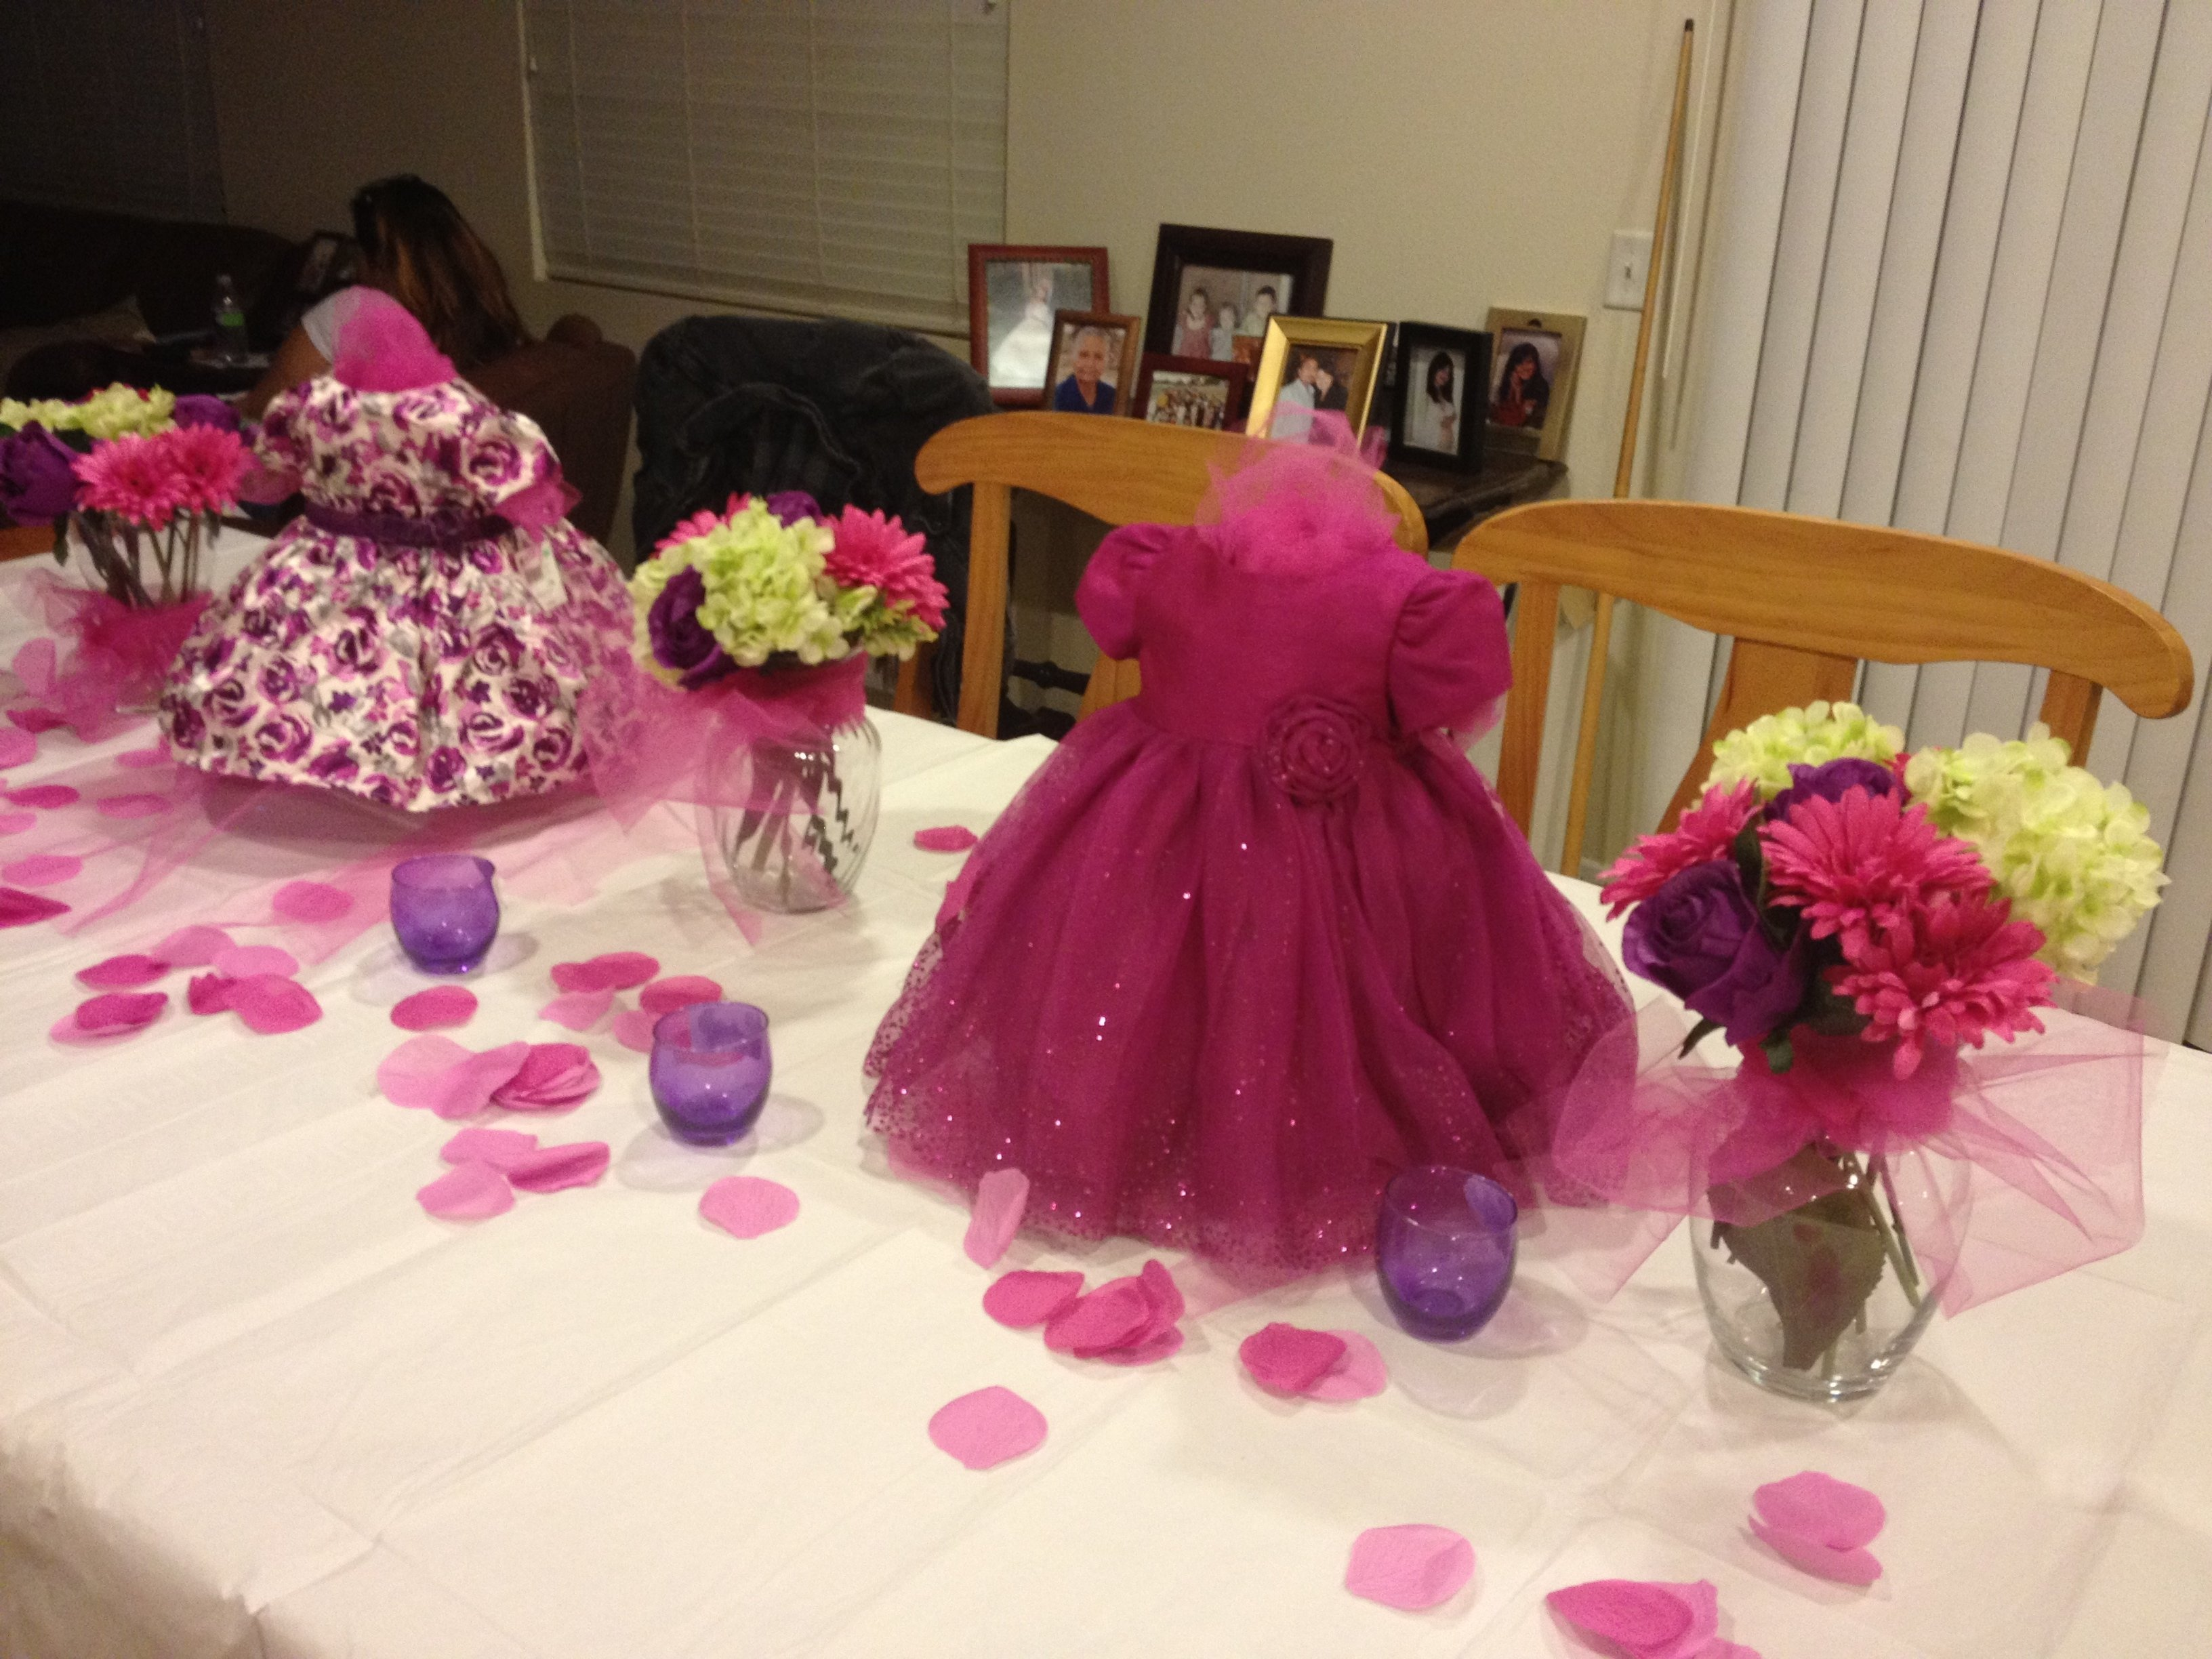 10 Attractive Girl Baby Shower Decoration Ideas best baby shower decorations images on pinterest y ideas pink to 1 2020